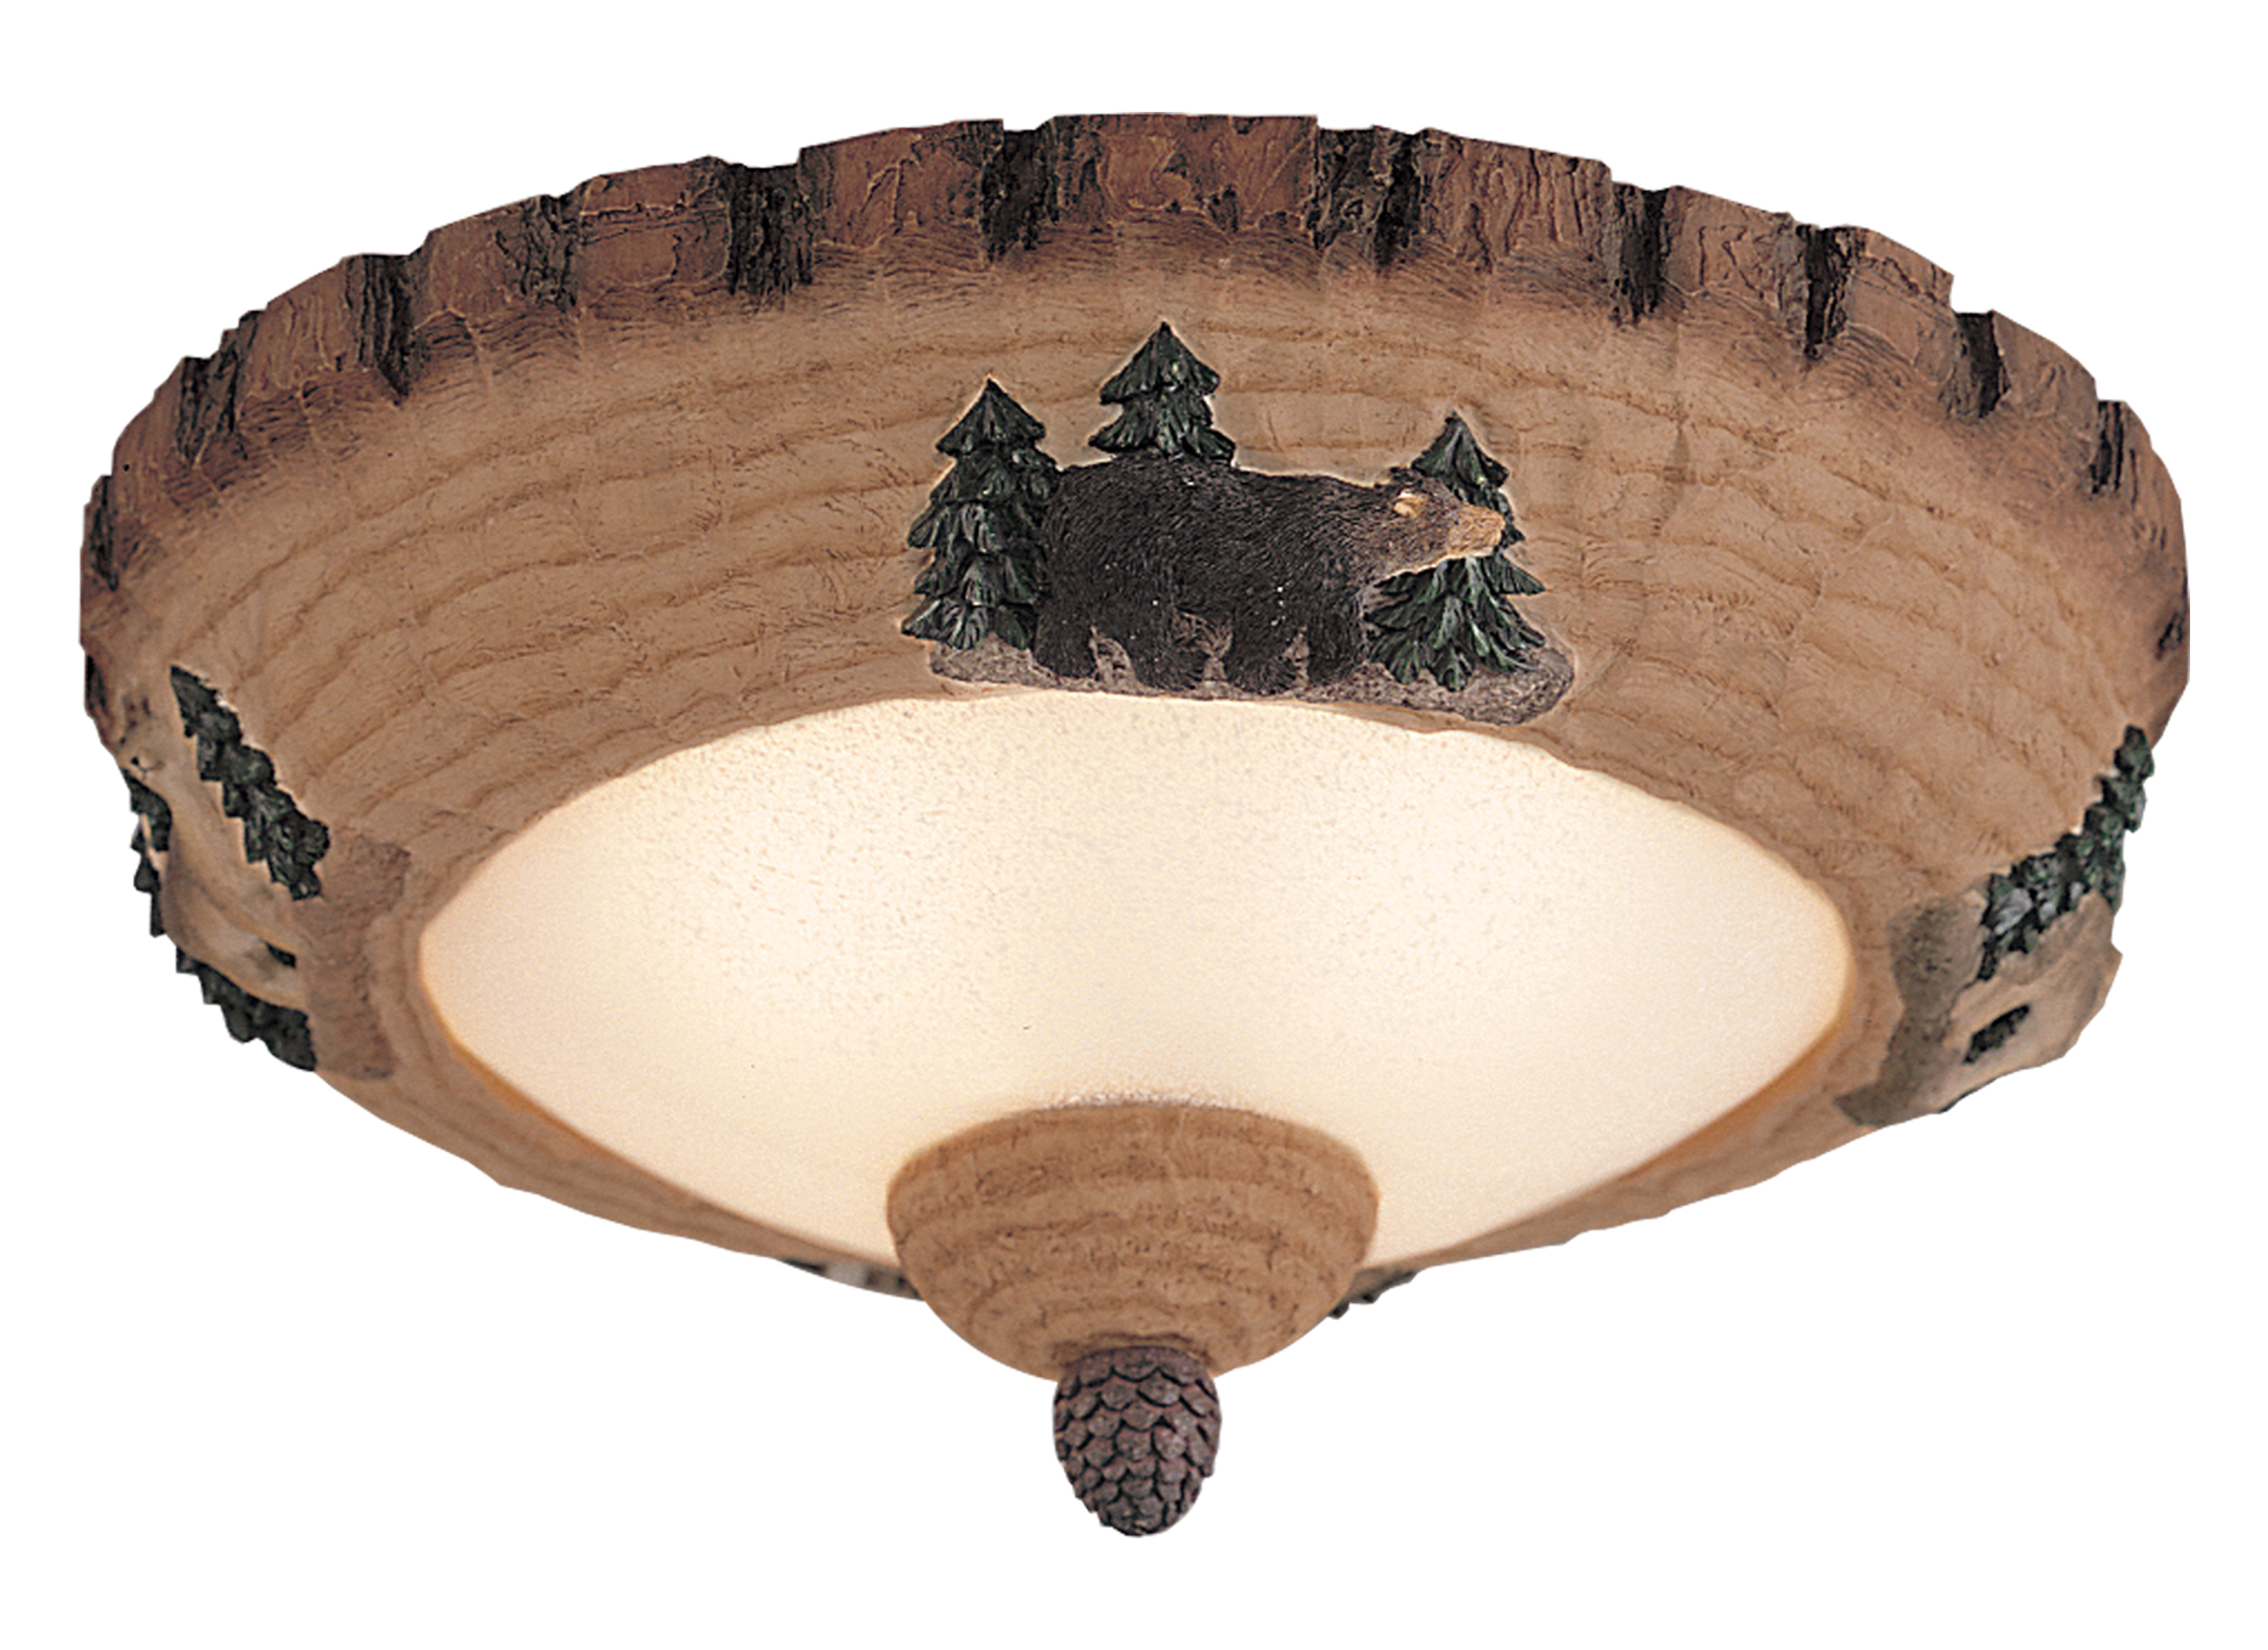 Mc102 llight kit wilderness lodge pine bowlweathered iron loading zoom aloadofball Gallery